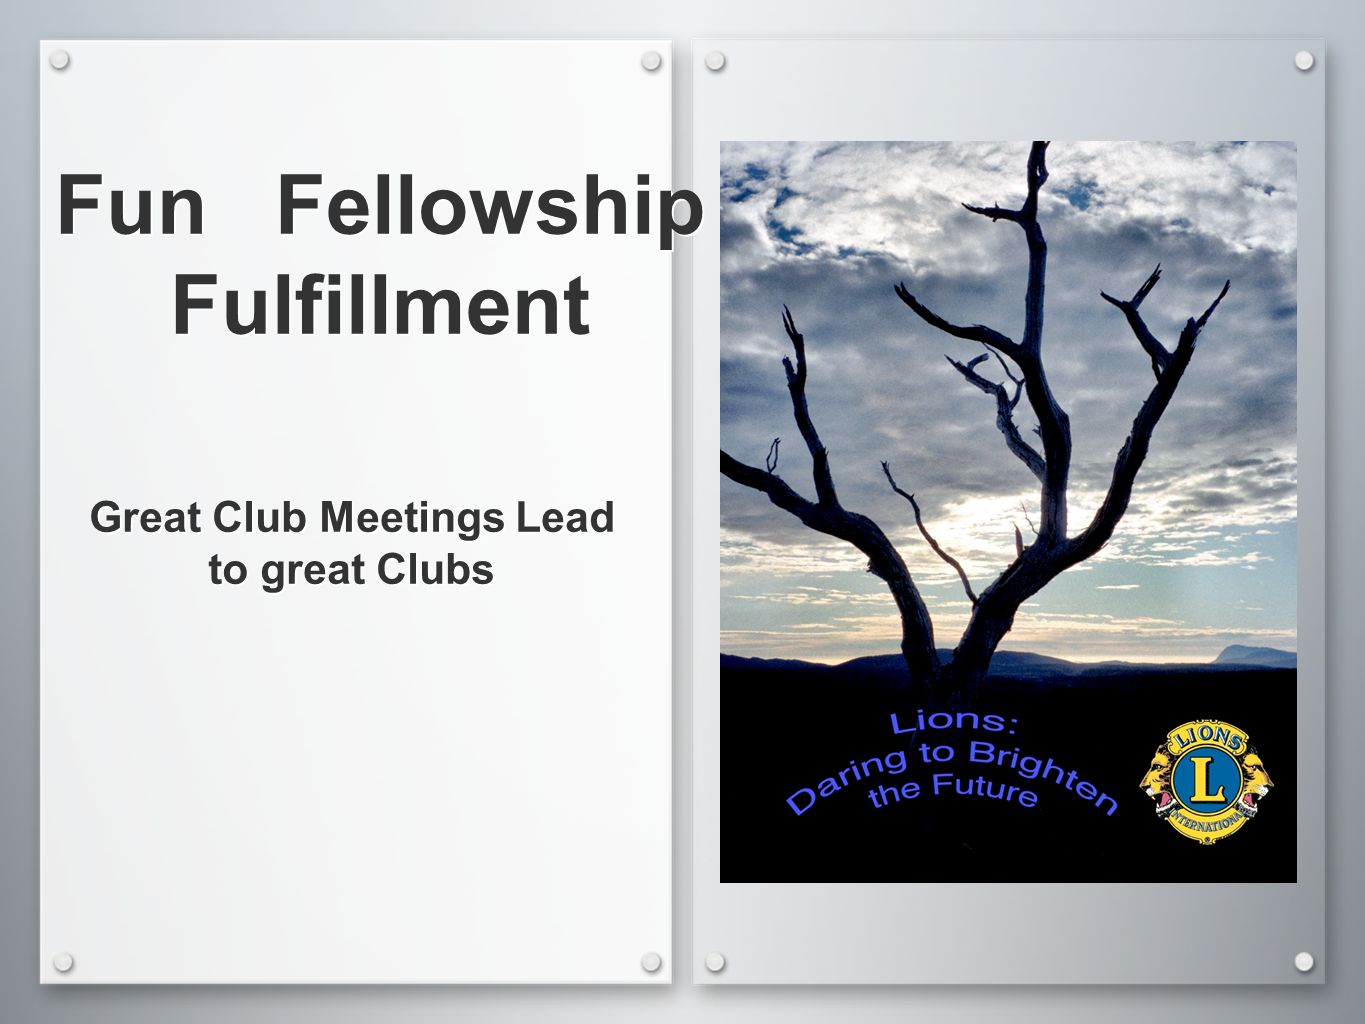 Fun Fellowship Fulfillment Great Club Meetings Lead to great Clubs